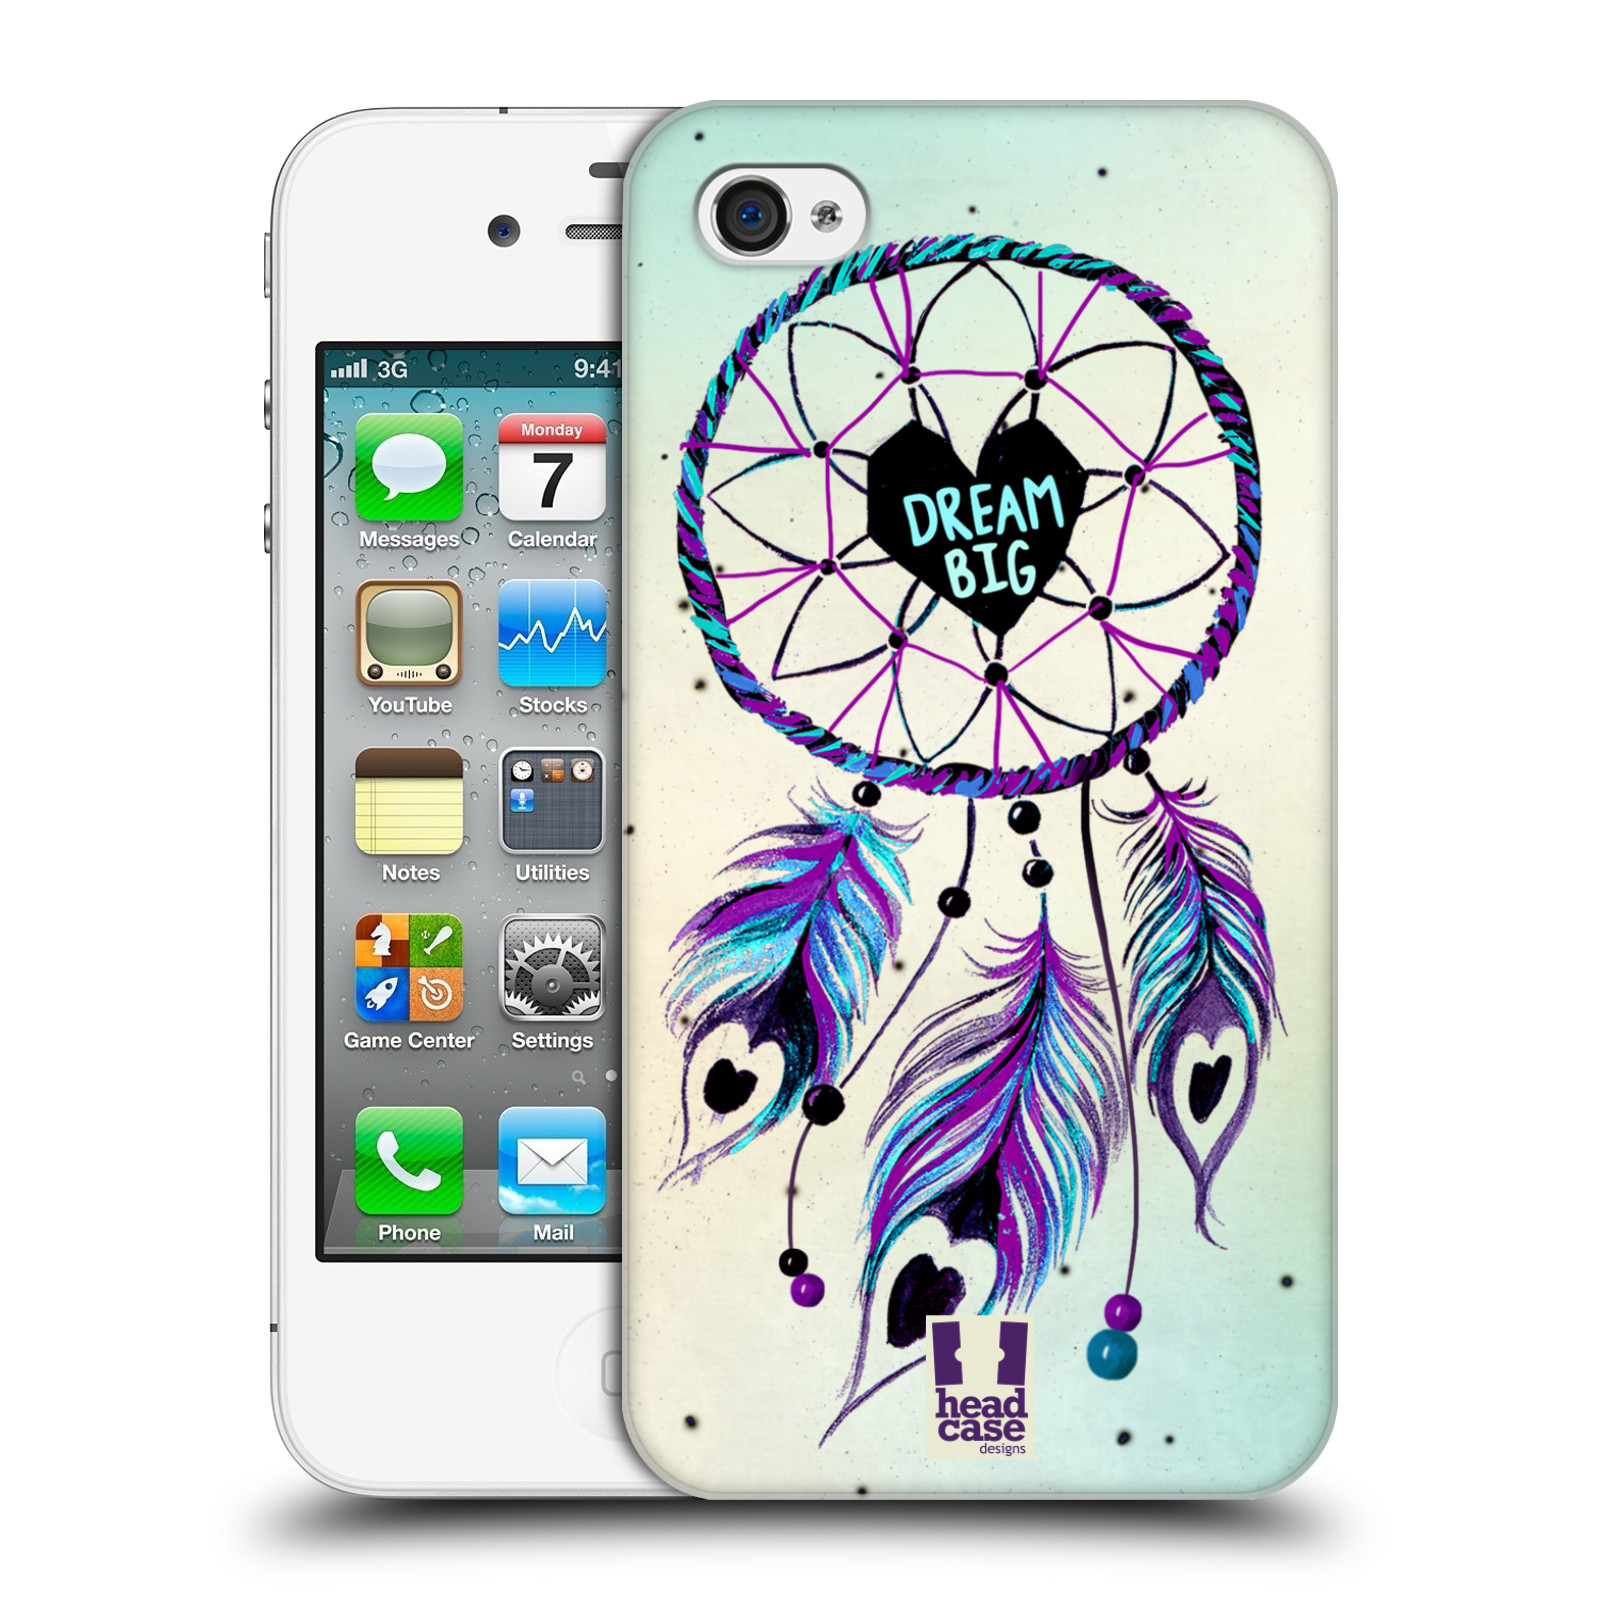 Plastové pouzdro na mobil Apple iPhone 4 a 4S HEAD CASE Lapač Assorted  Dream Big Srdce empty cadc9a0145d